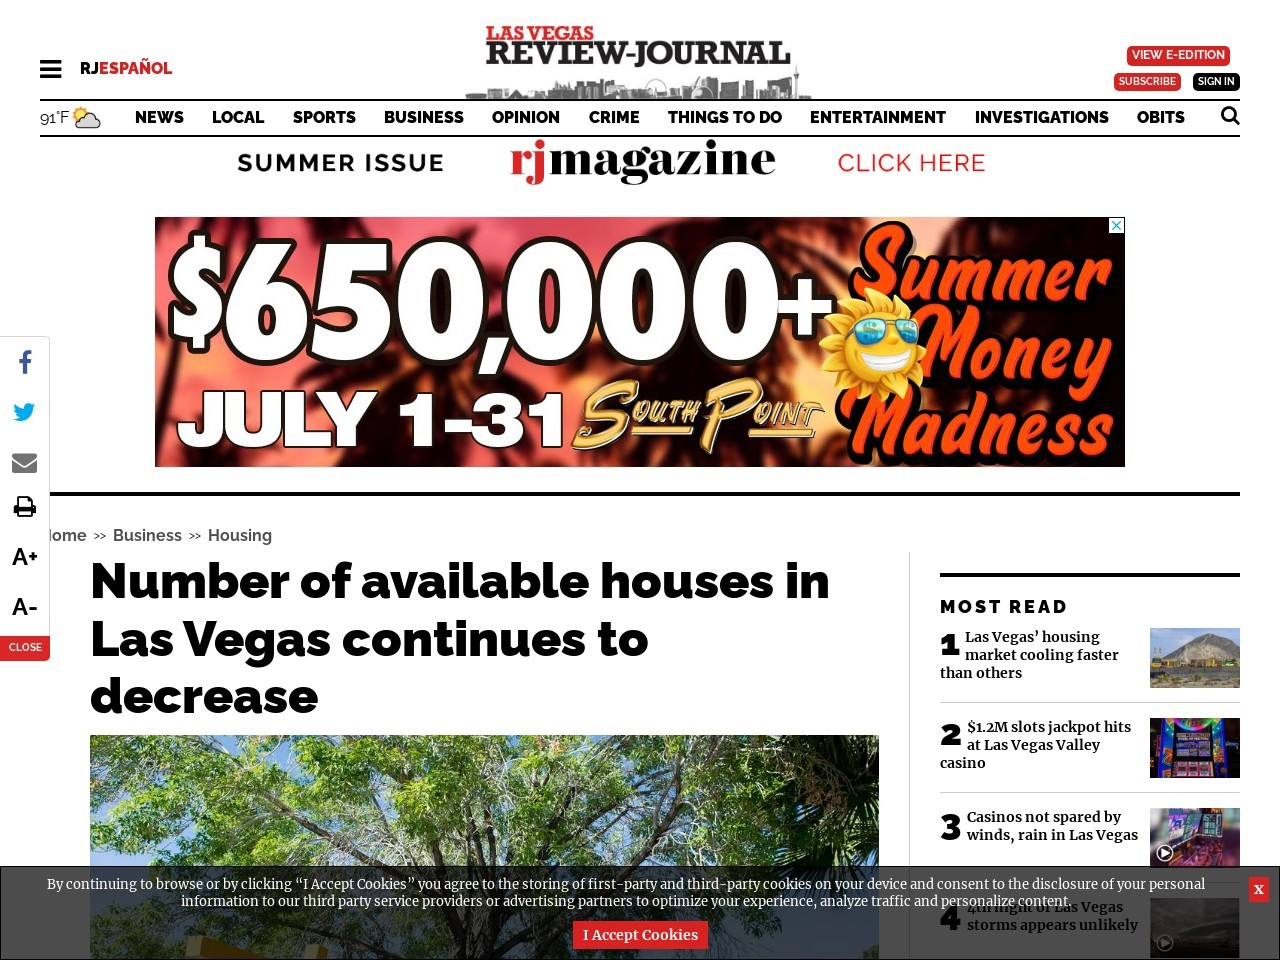 Tally of available houses in Las Vegas continues to tumble